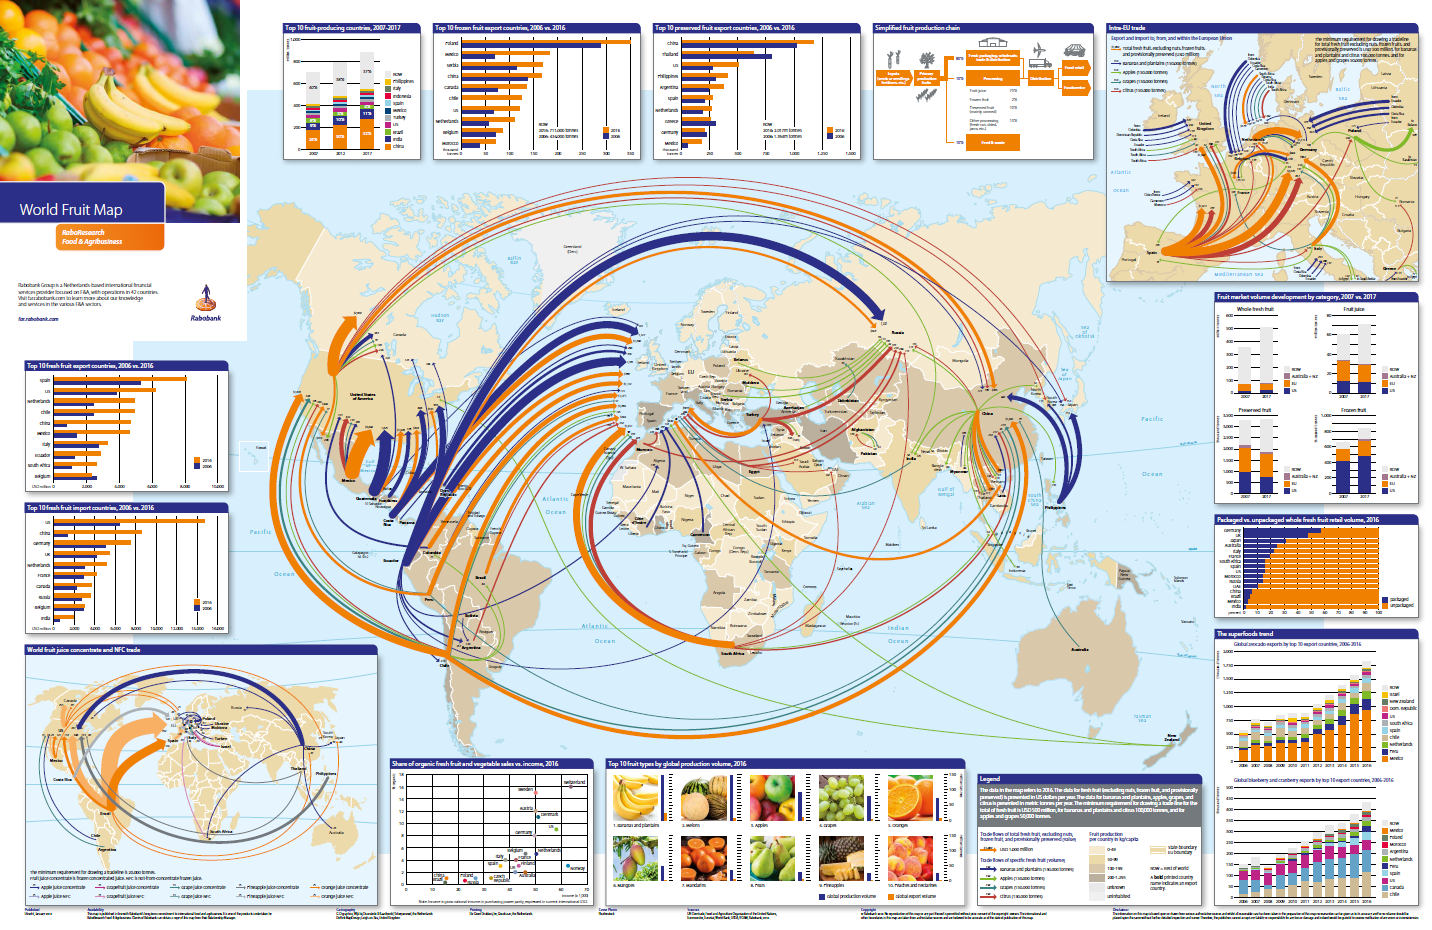 World Fruit Map 2018